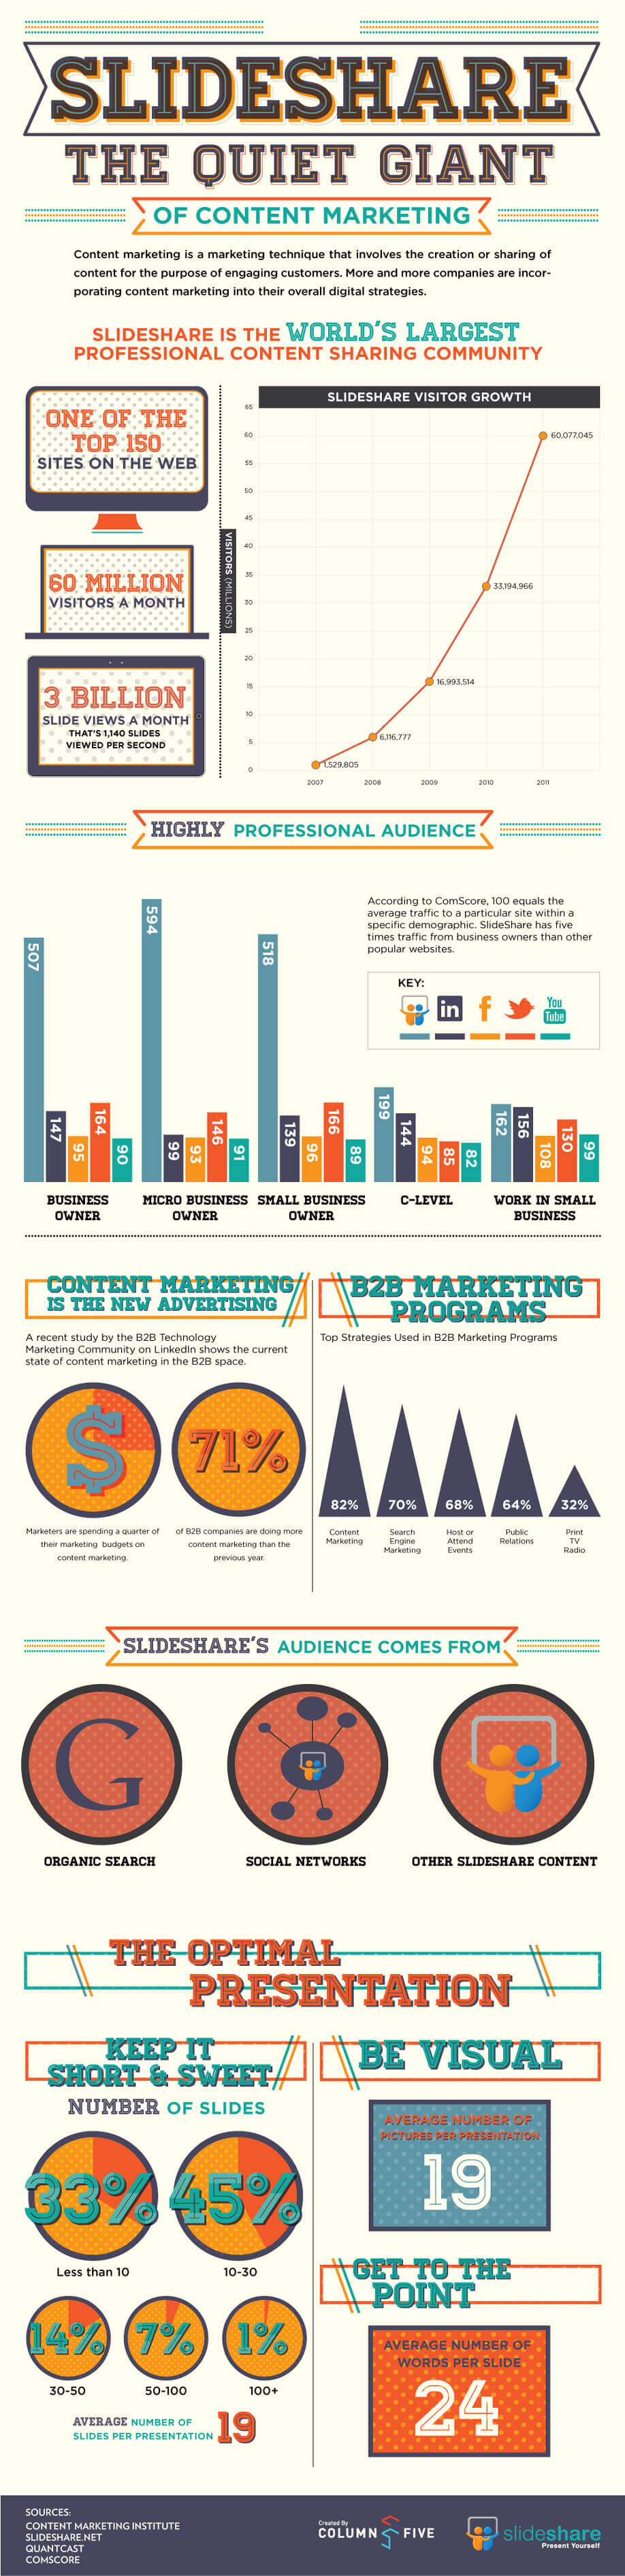 Infographic – SlideShare The Quiet Giant of Content Marketing